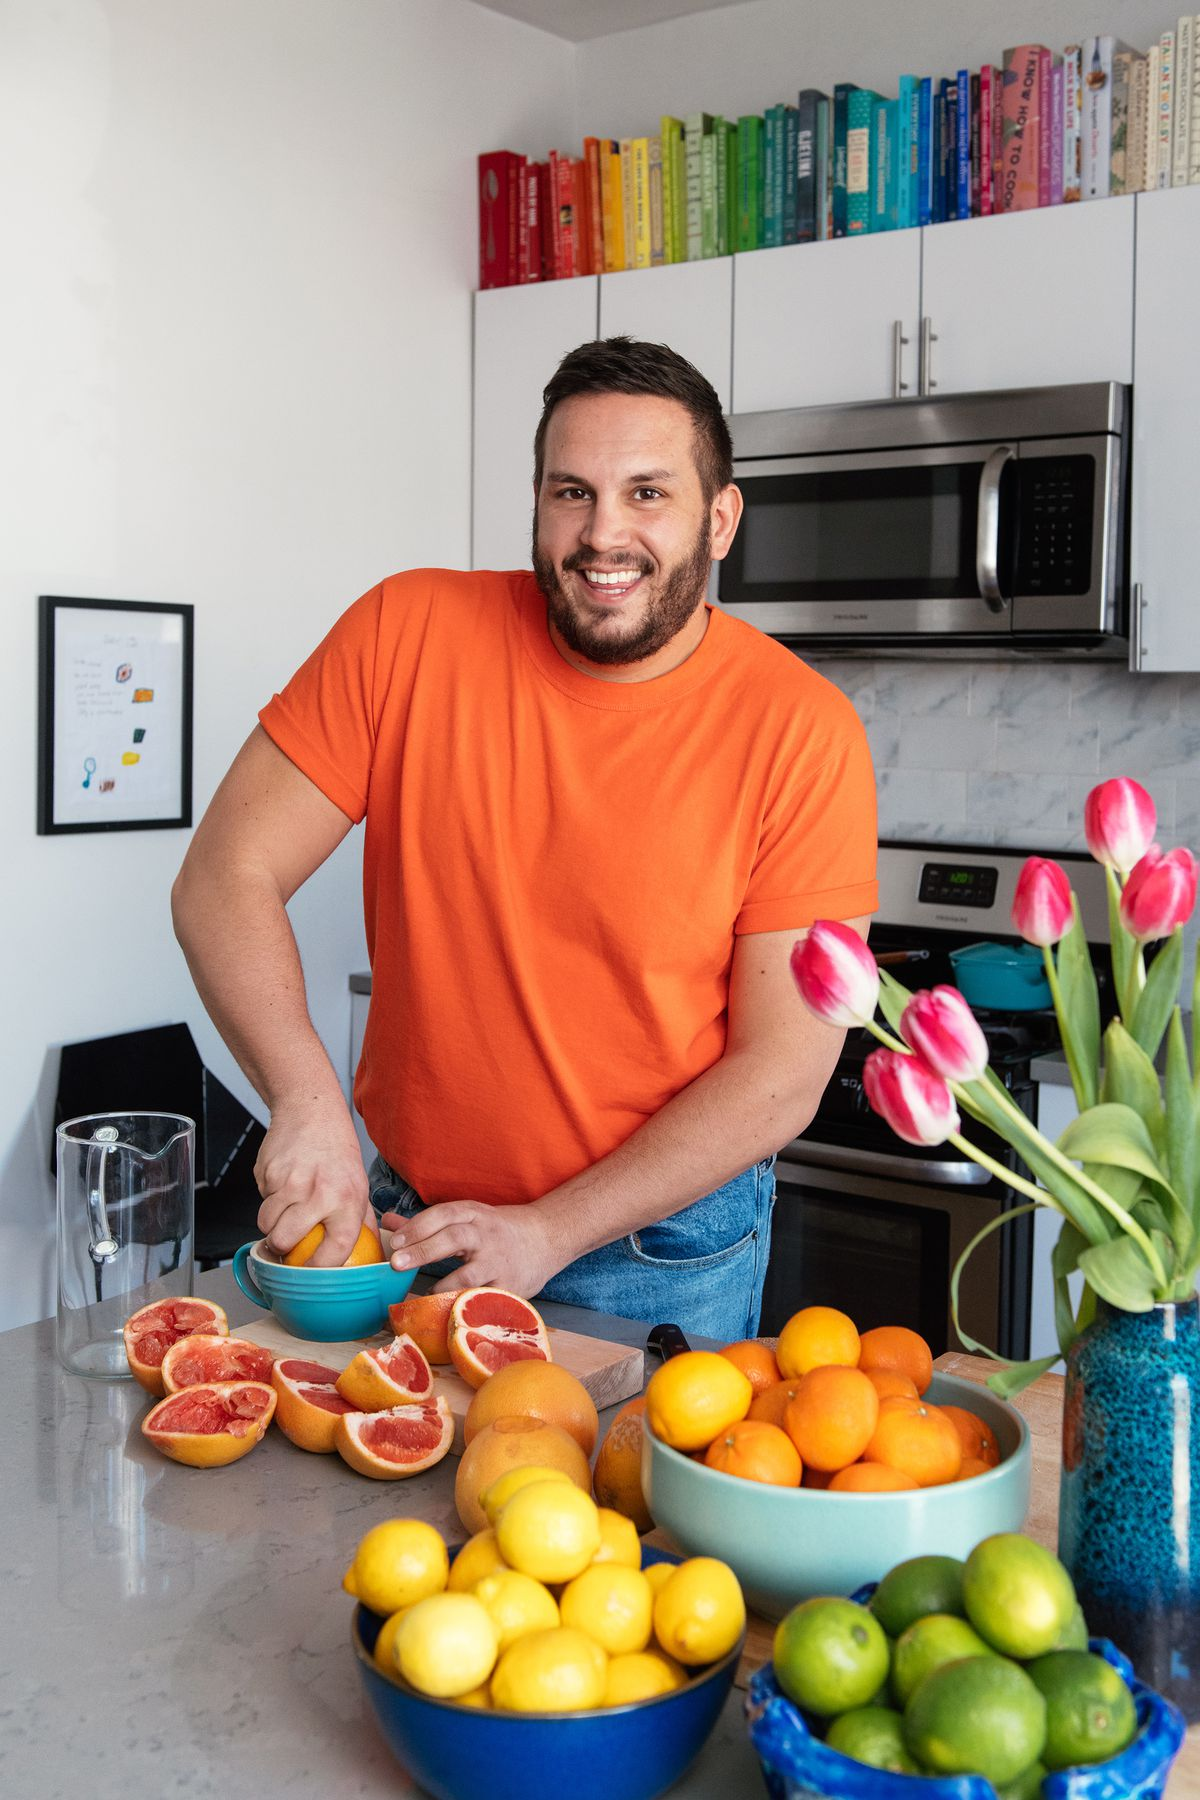 A man smiles at the camera while standing in the kitchen juicing a grapefruit. There are many grapefruits on the counter in front of him. In the background are various kitchen appliances.